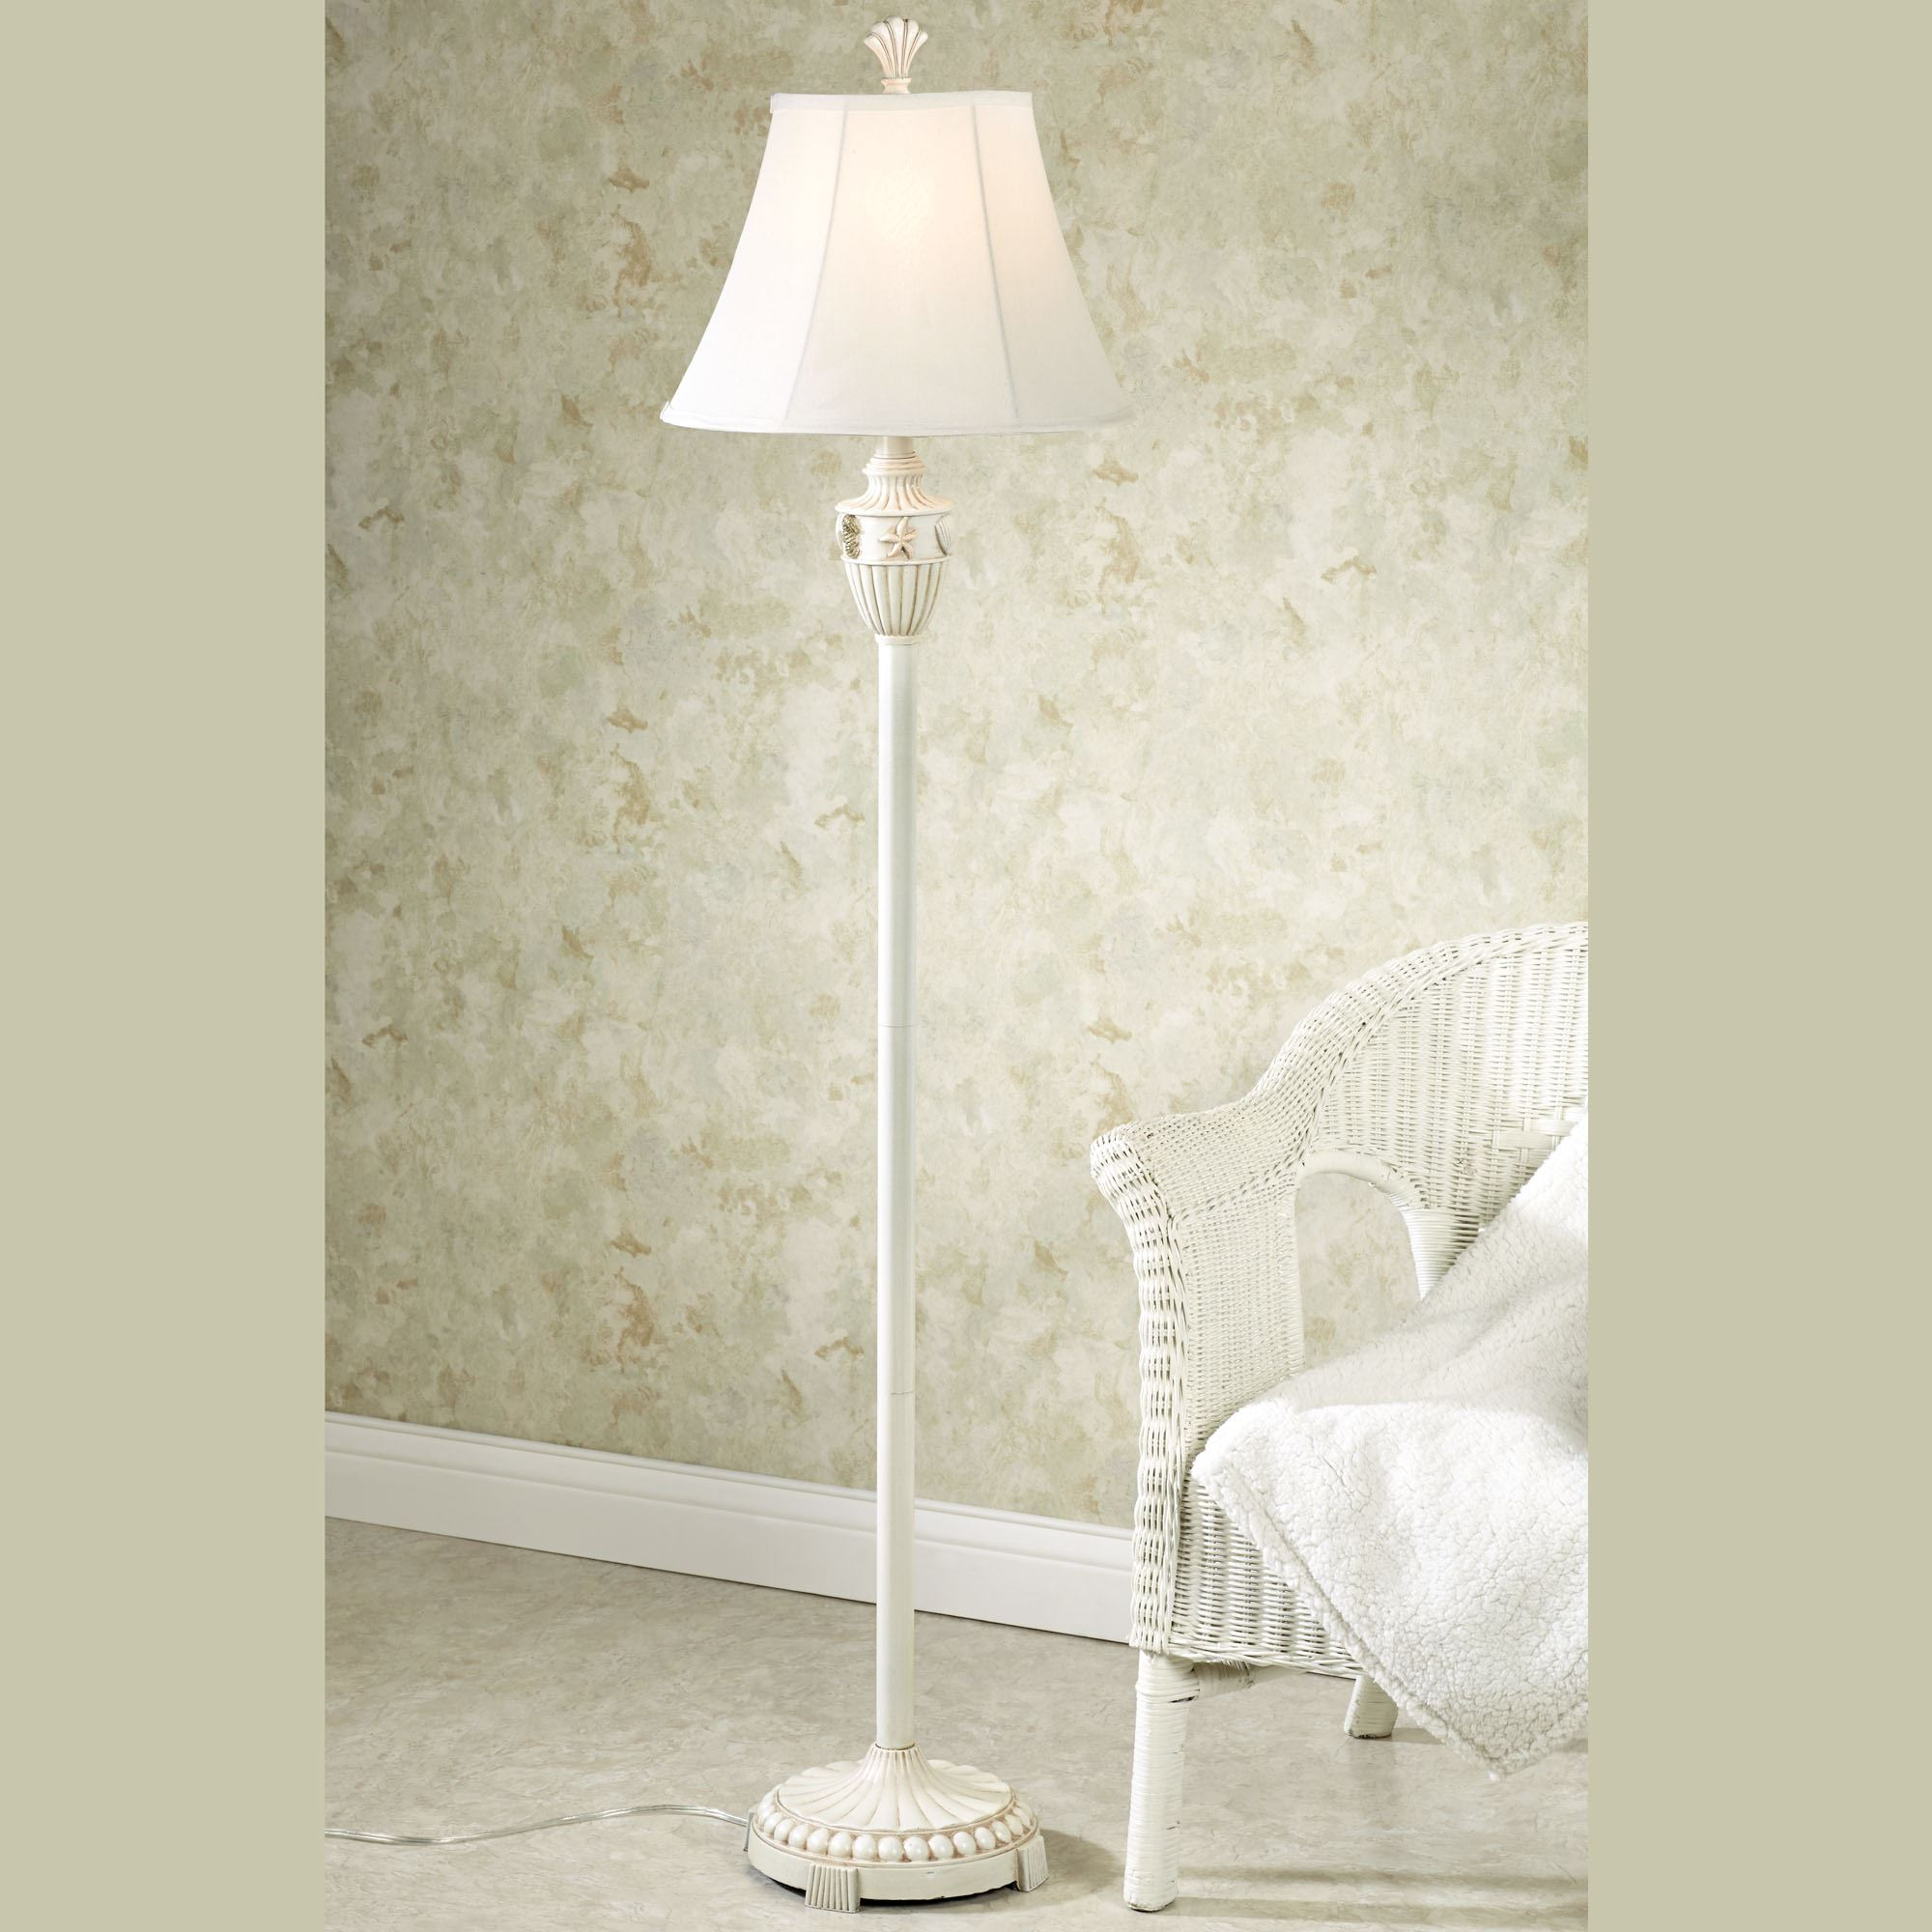 Coastal Lamps Sand And Shell Coastal Floor Lamp